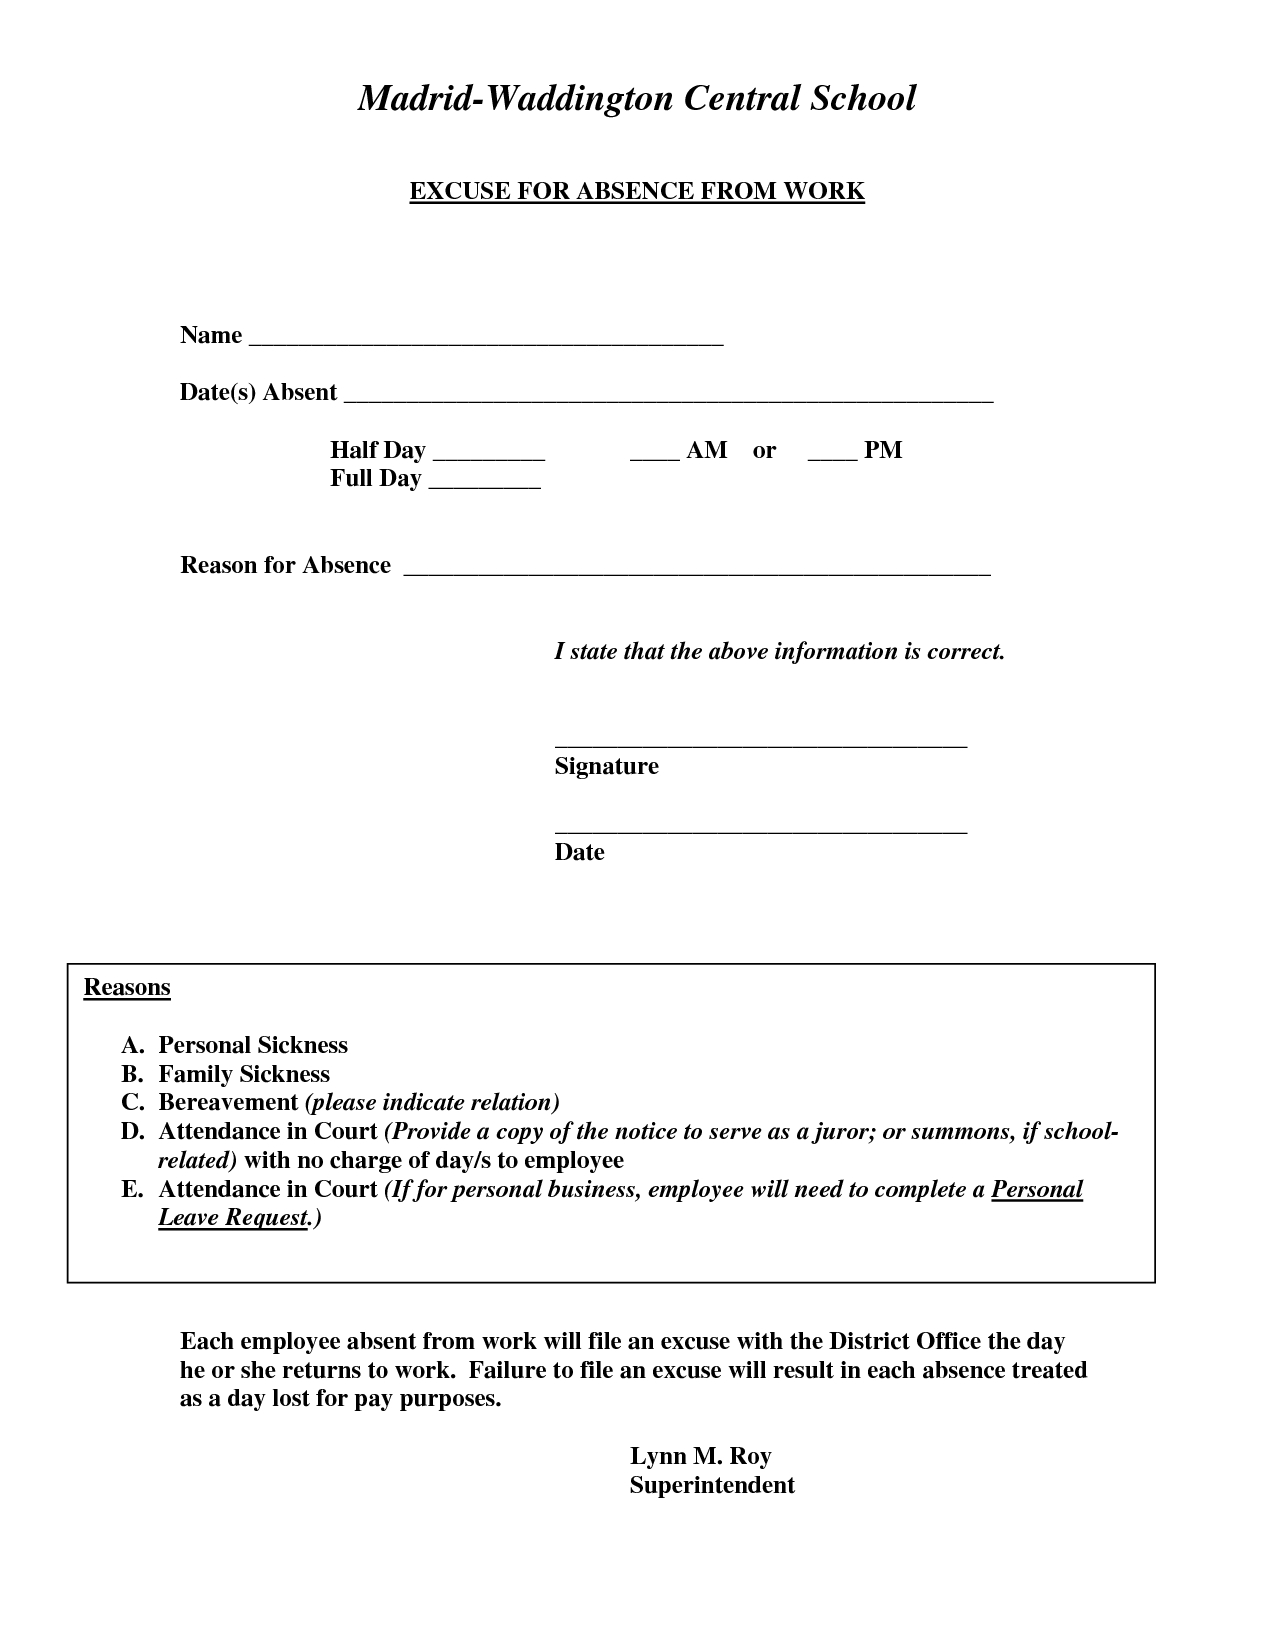 Doctors Excuse For Work Template | Excuse For Absence From Work - Free Printable Doctor Notes